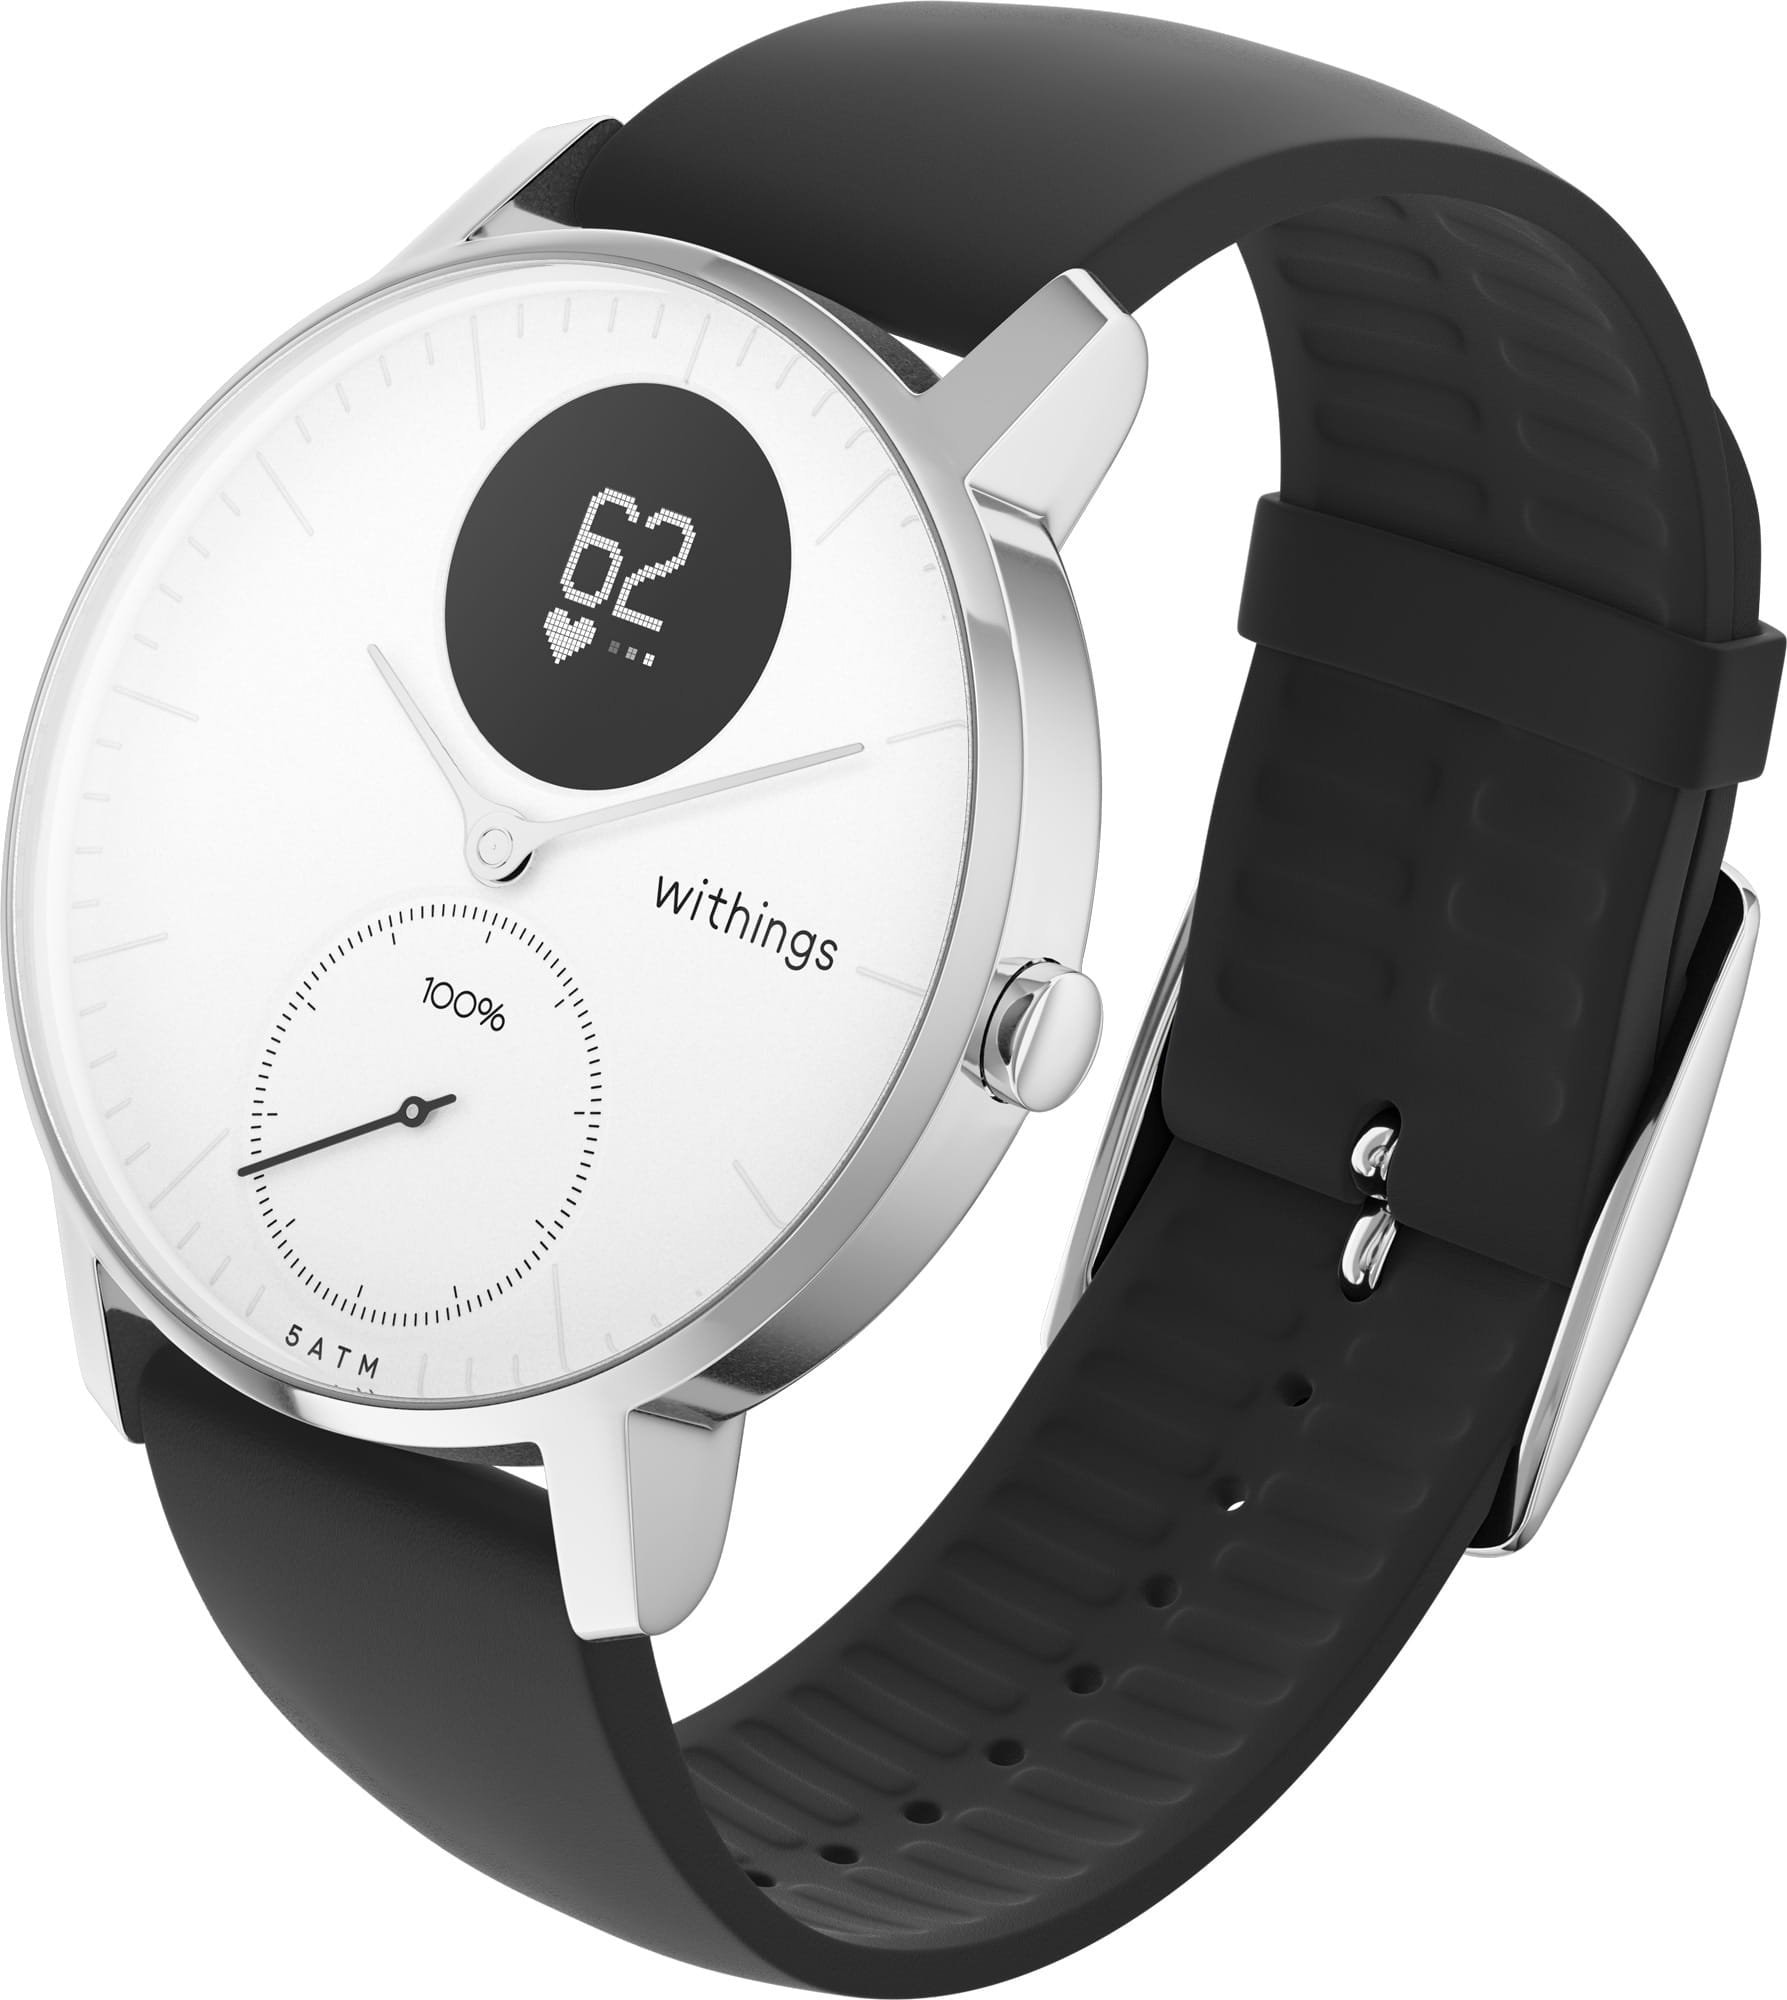 Withings x Nokia SmartWatch